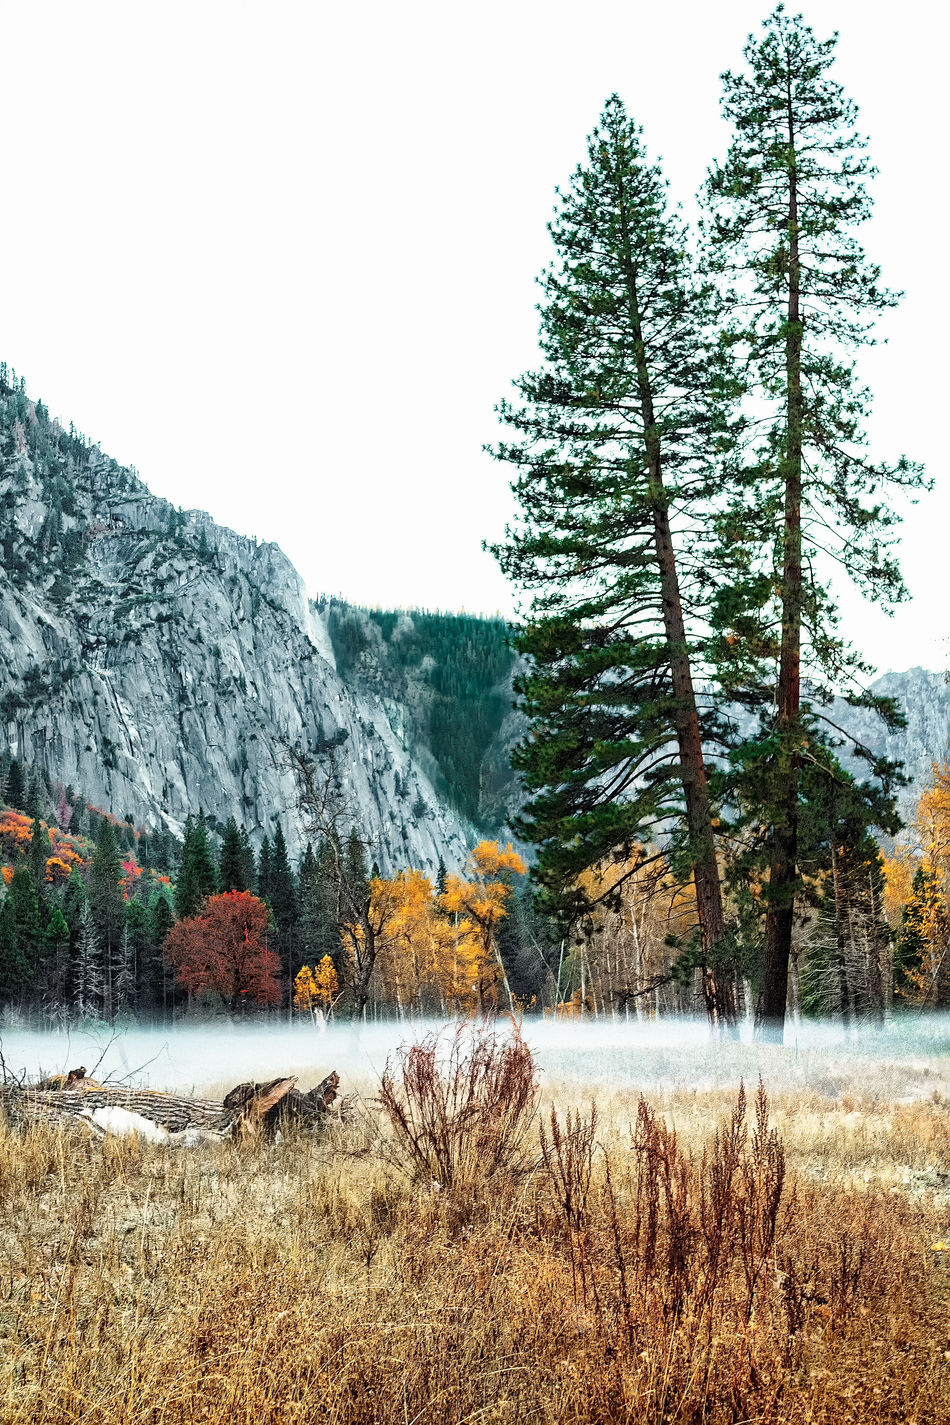 Yosemite National Park in Early Fall 2016. Fog Sits upon the Yosemite Valley floor. Beauty In Nature Clear Sky Day Fog Growth High Definition Lake Lakeshore Landscape Nature No People Non-urban Scene Outdoors Scenics Sky Tranquil Scene Tranquility Tree Trees Water Yosemite National Park